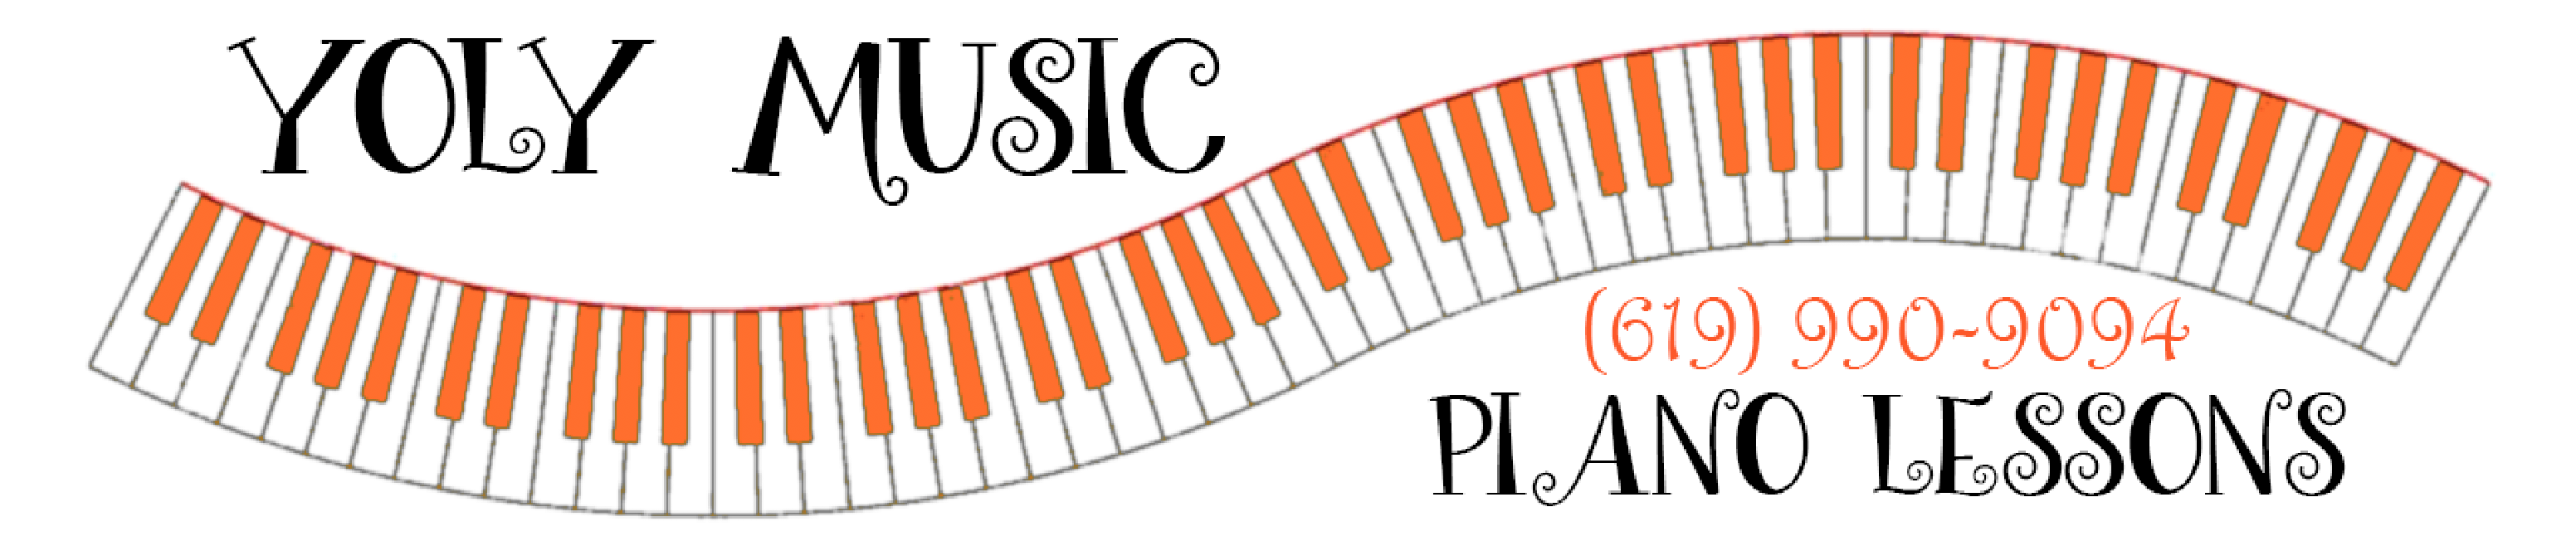 Customized Piano Lessons with Former Pianist, Teacher & Composer From London 5